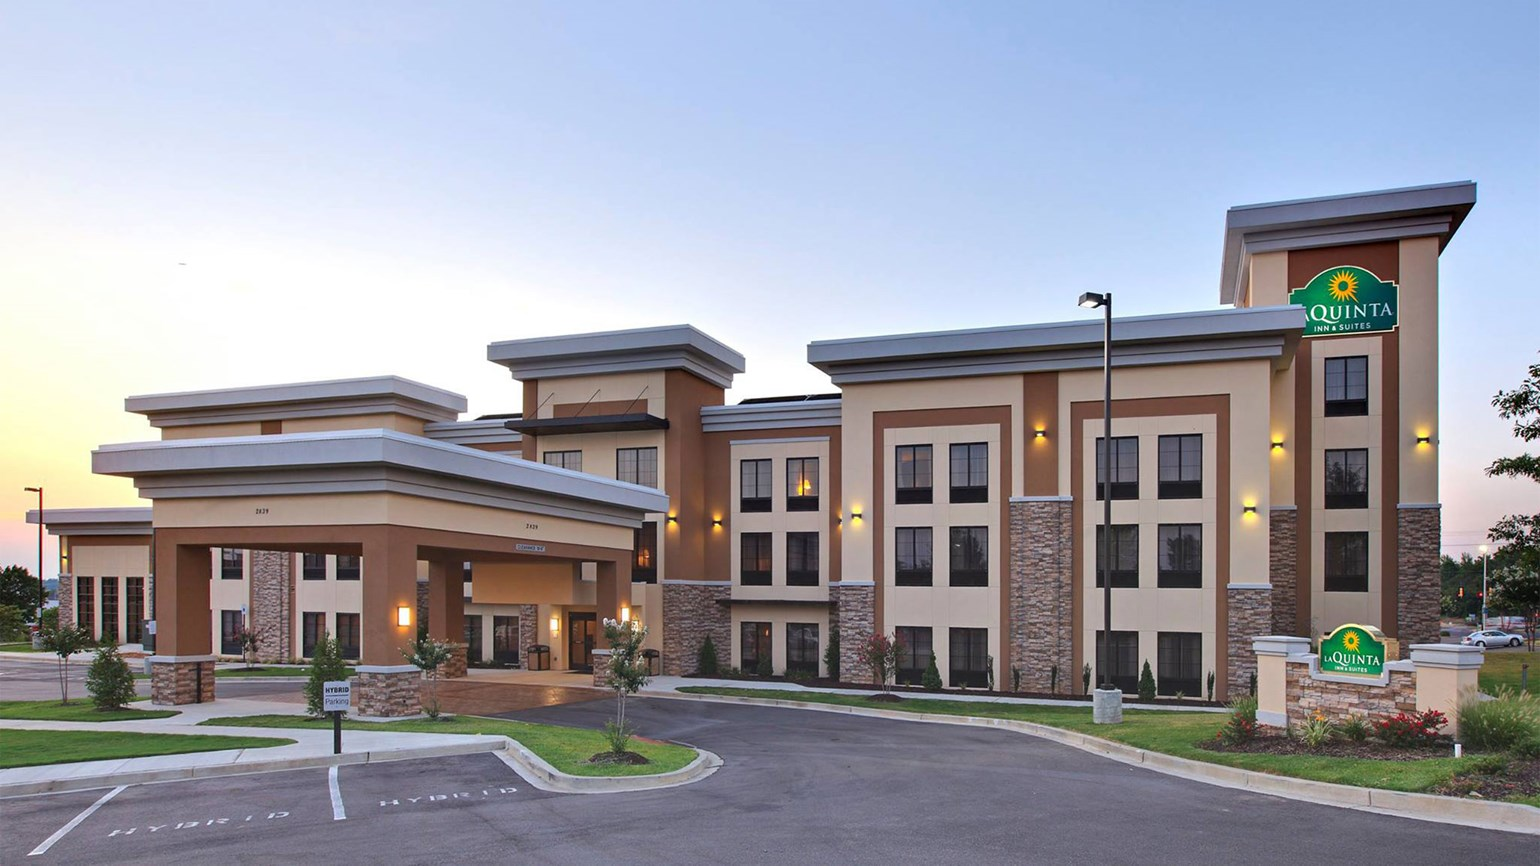 Wyndham to fatten midscale portfolio with La Quinta acquisition